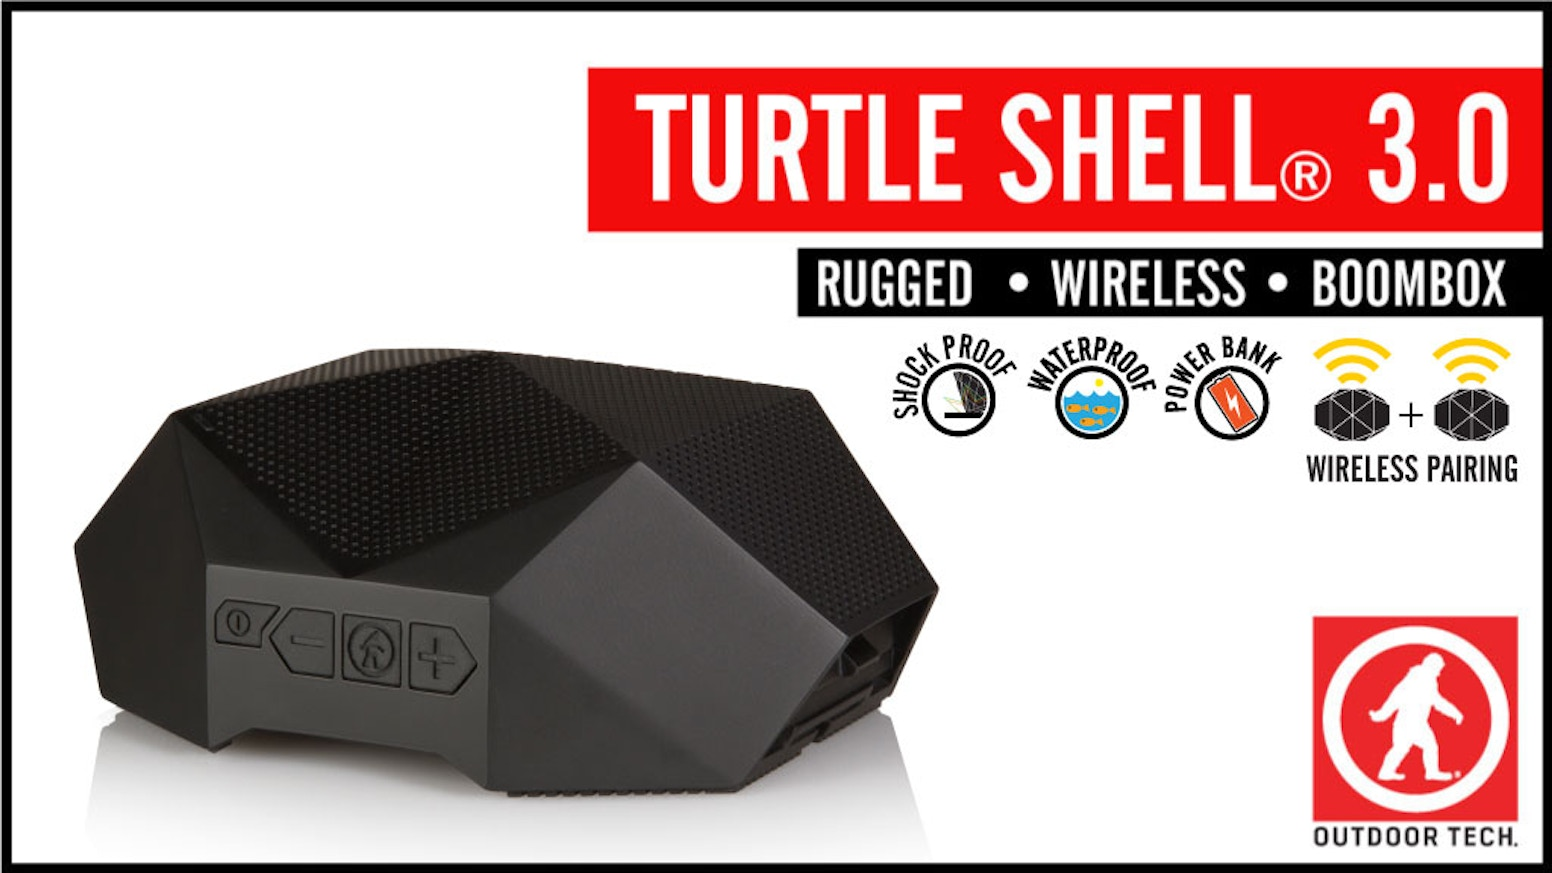 Rugged, waterproof, wireless speakers that can link together wirelessly. They also have a built in power bank for charging stuff.